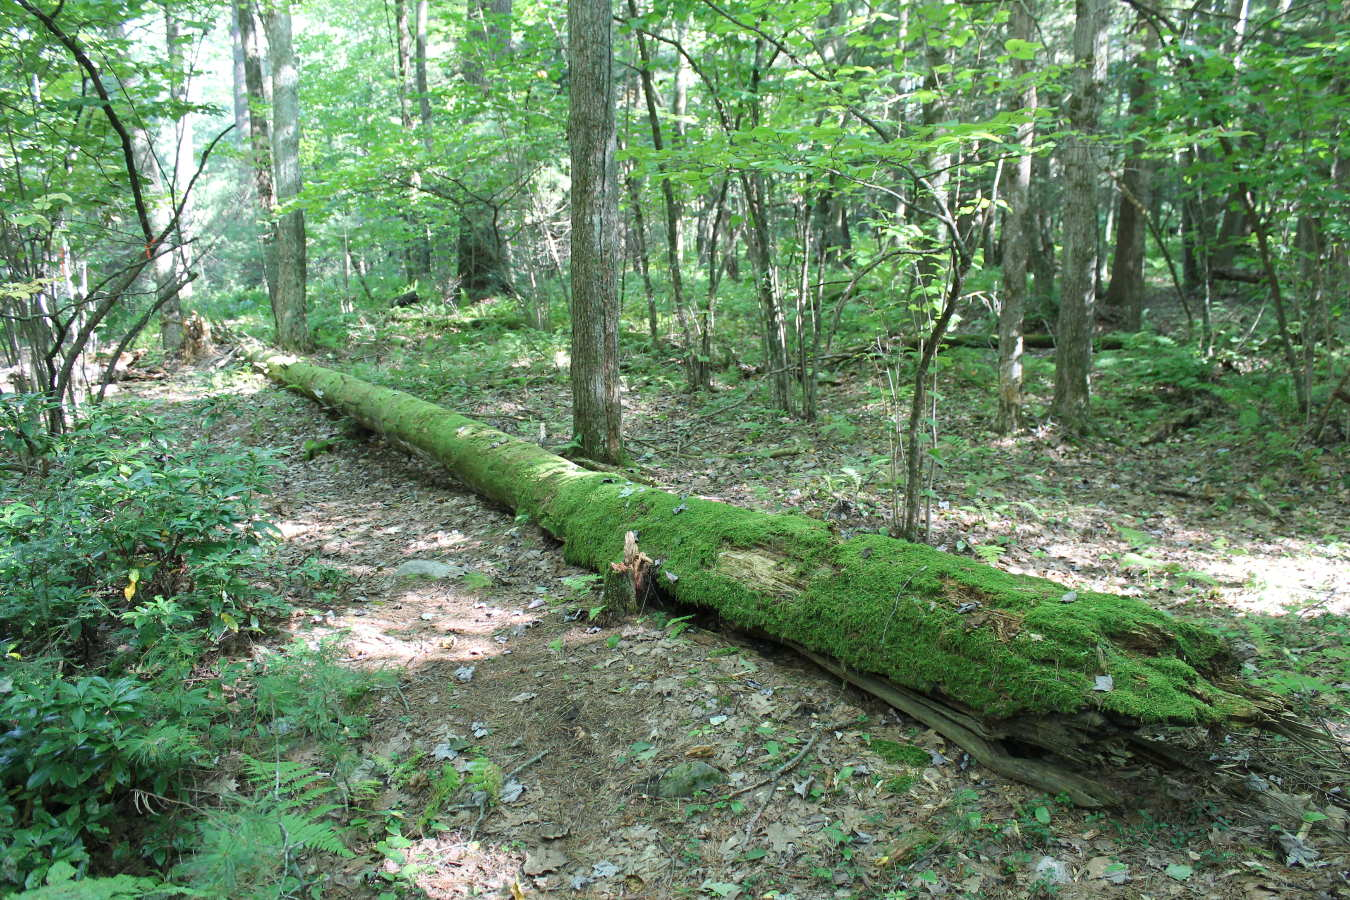 Photo of mossy log in Schiffman Woods